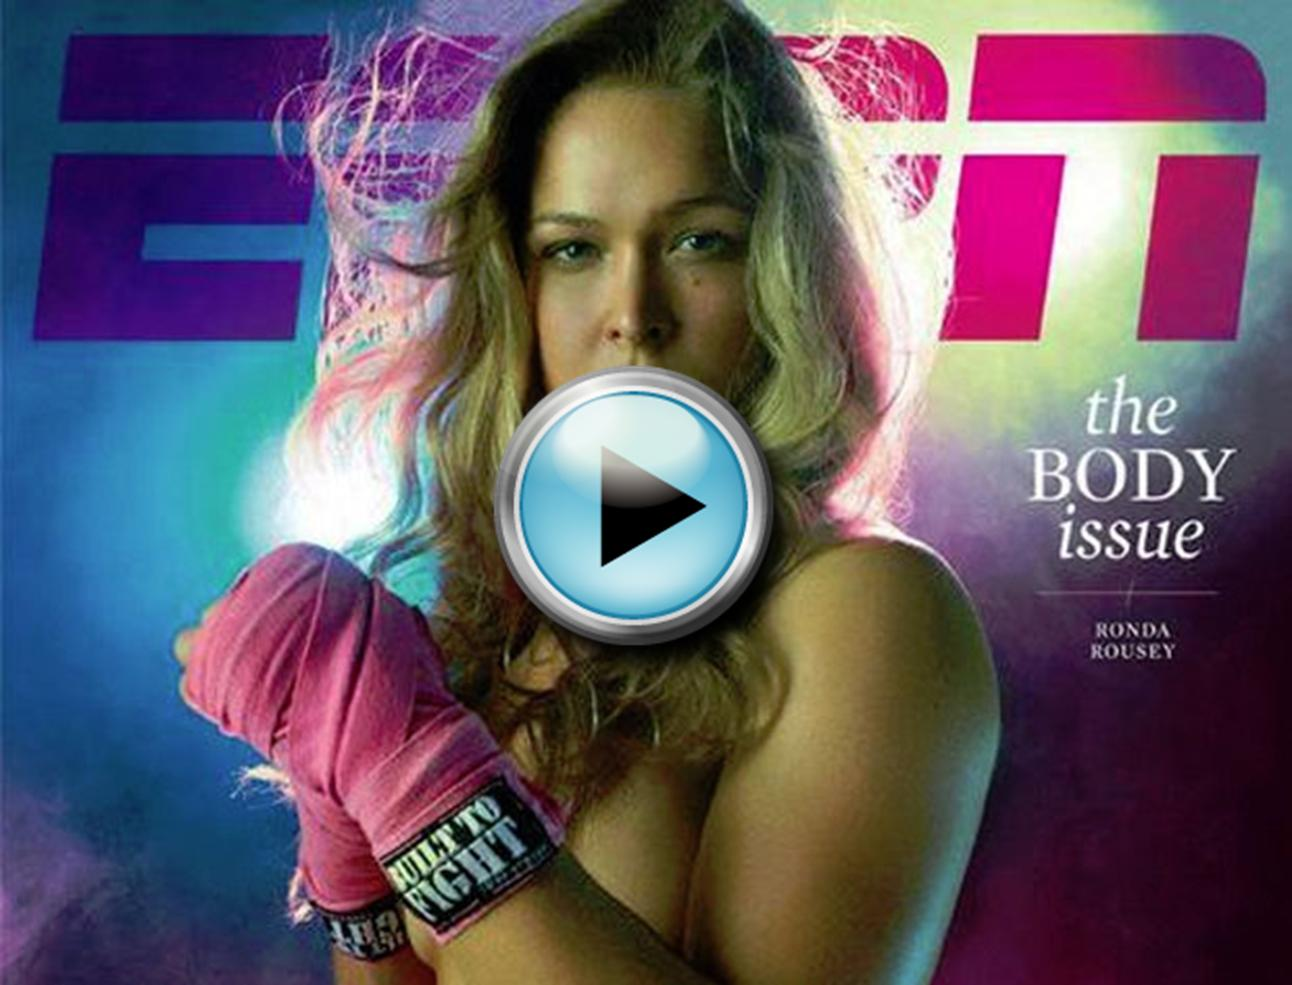 Ronda Rousey Picture 8 - ESPN Body Issue Celebration Party